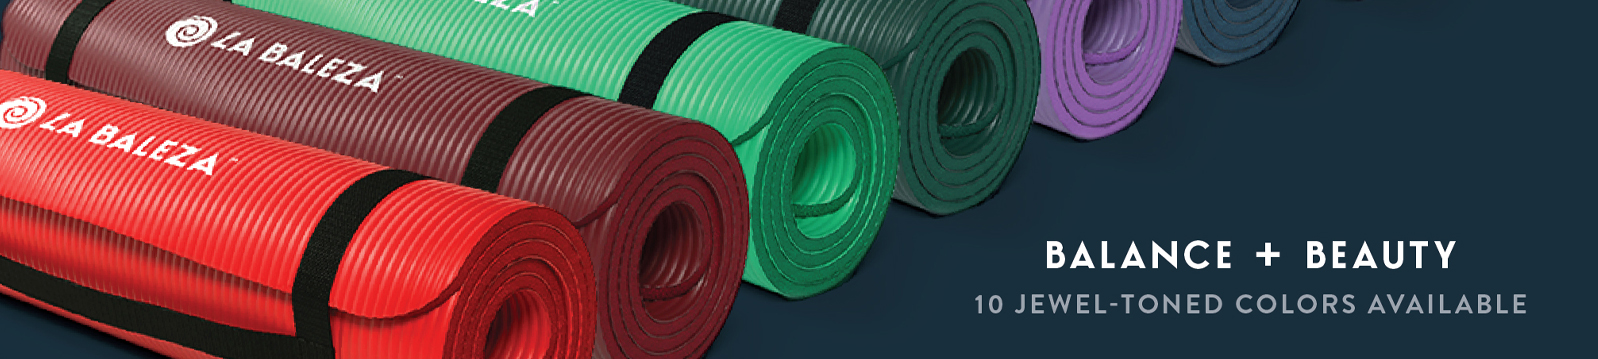 yoga-10-colors.jpg